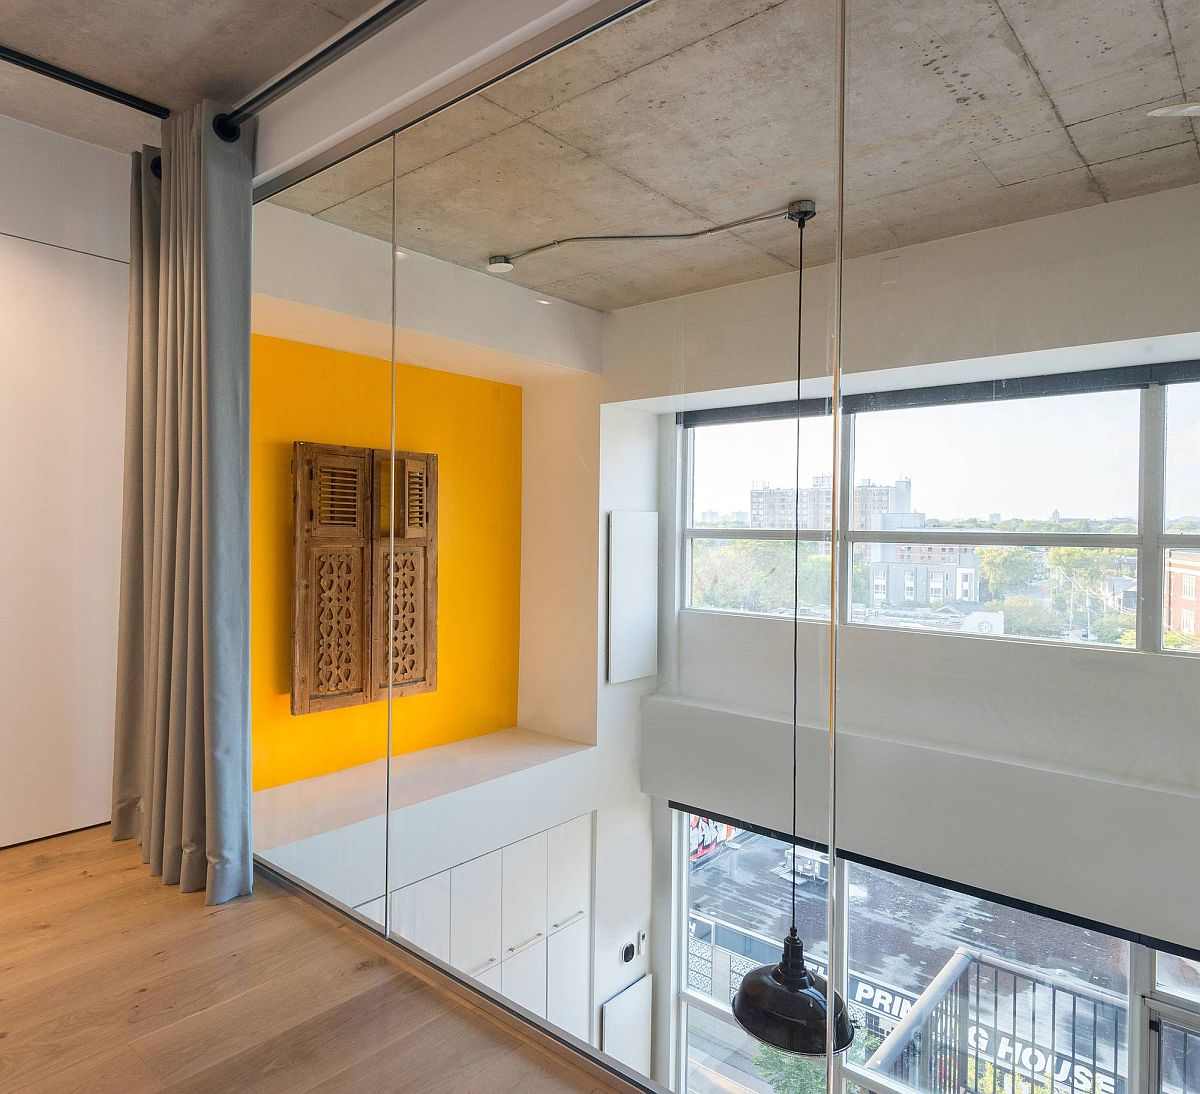 Yellow accent feature with reclaimed window shutters adds color to both the levels